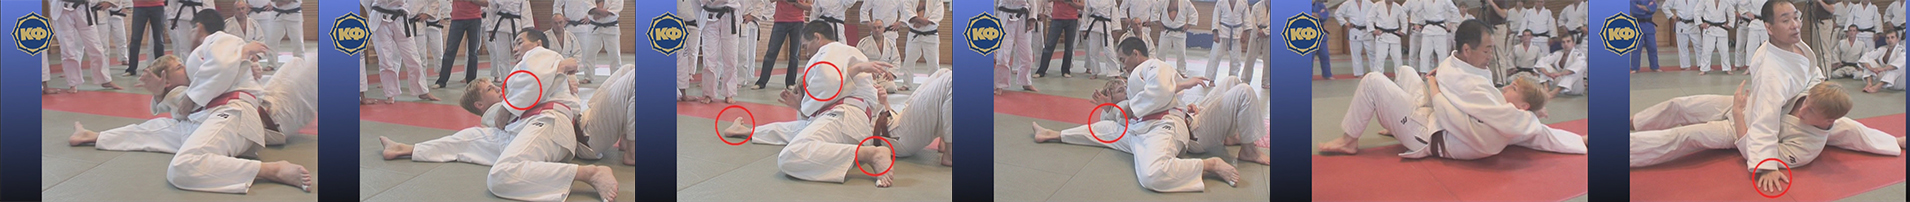 Hon-kesa-gatame (painfull hold from the side). Judo Poster 3. Yellow Belt 5 Kyu.